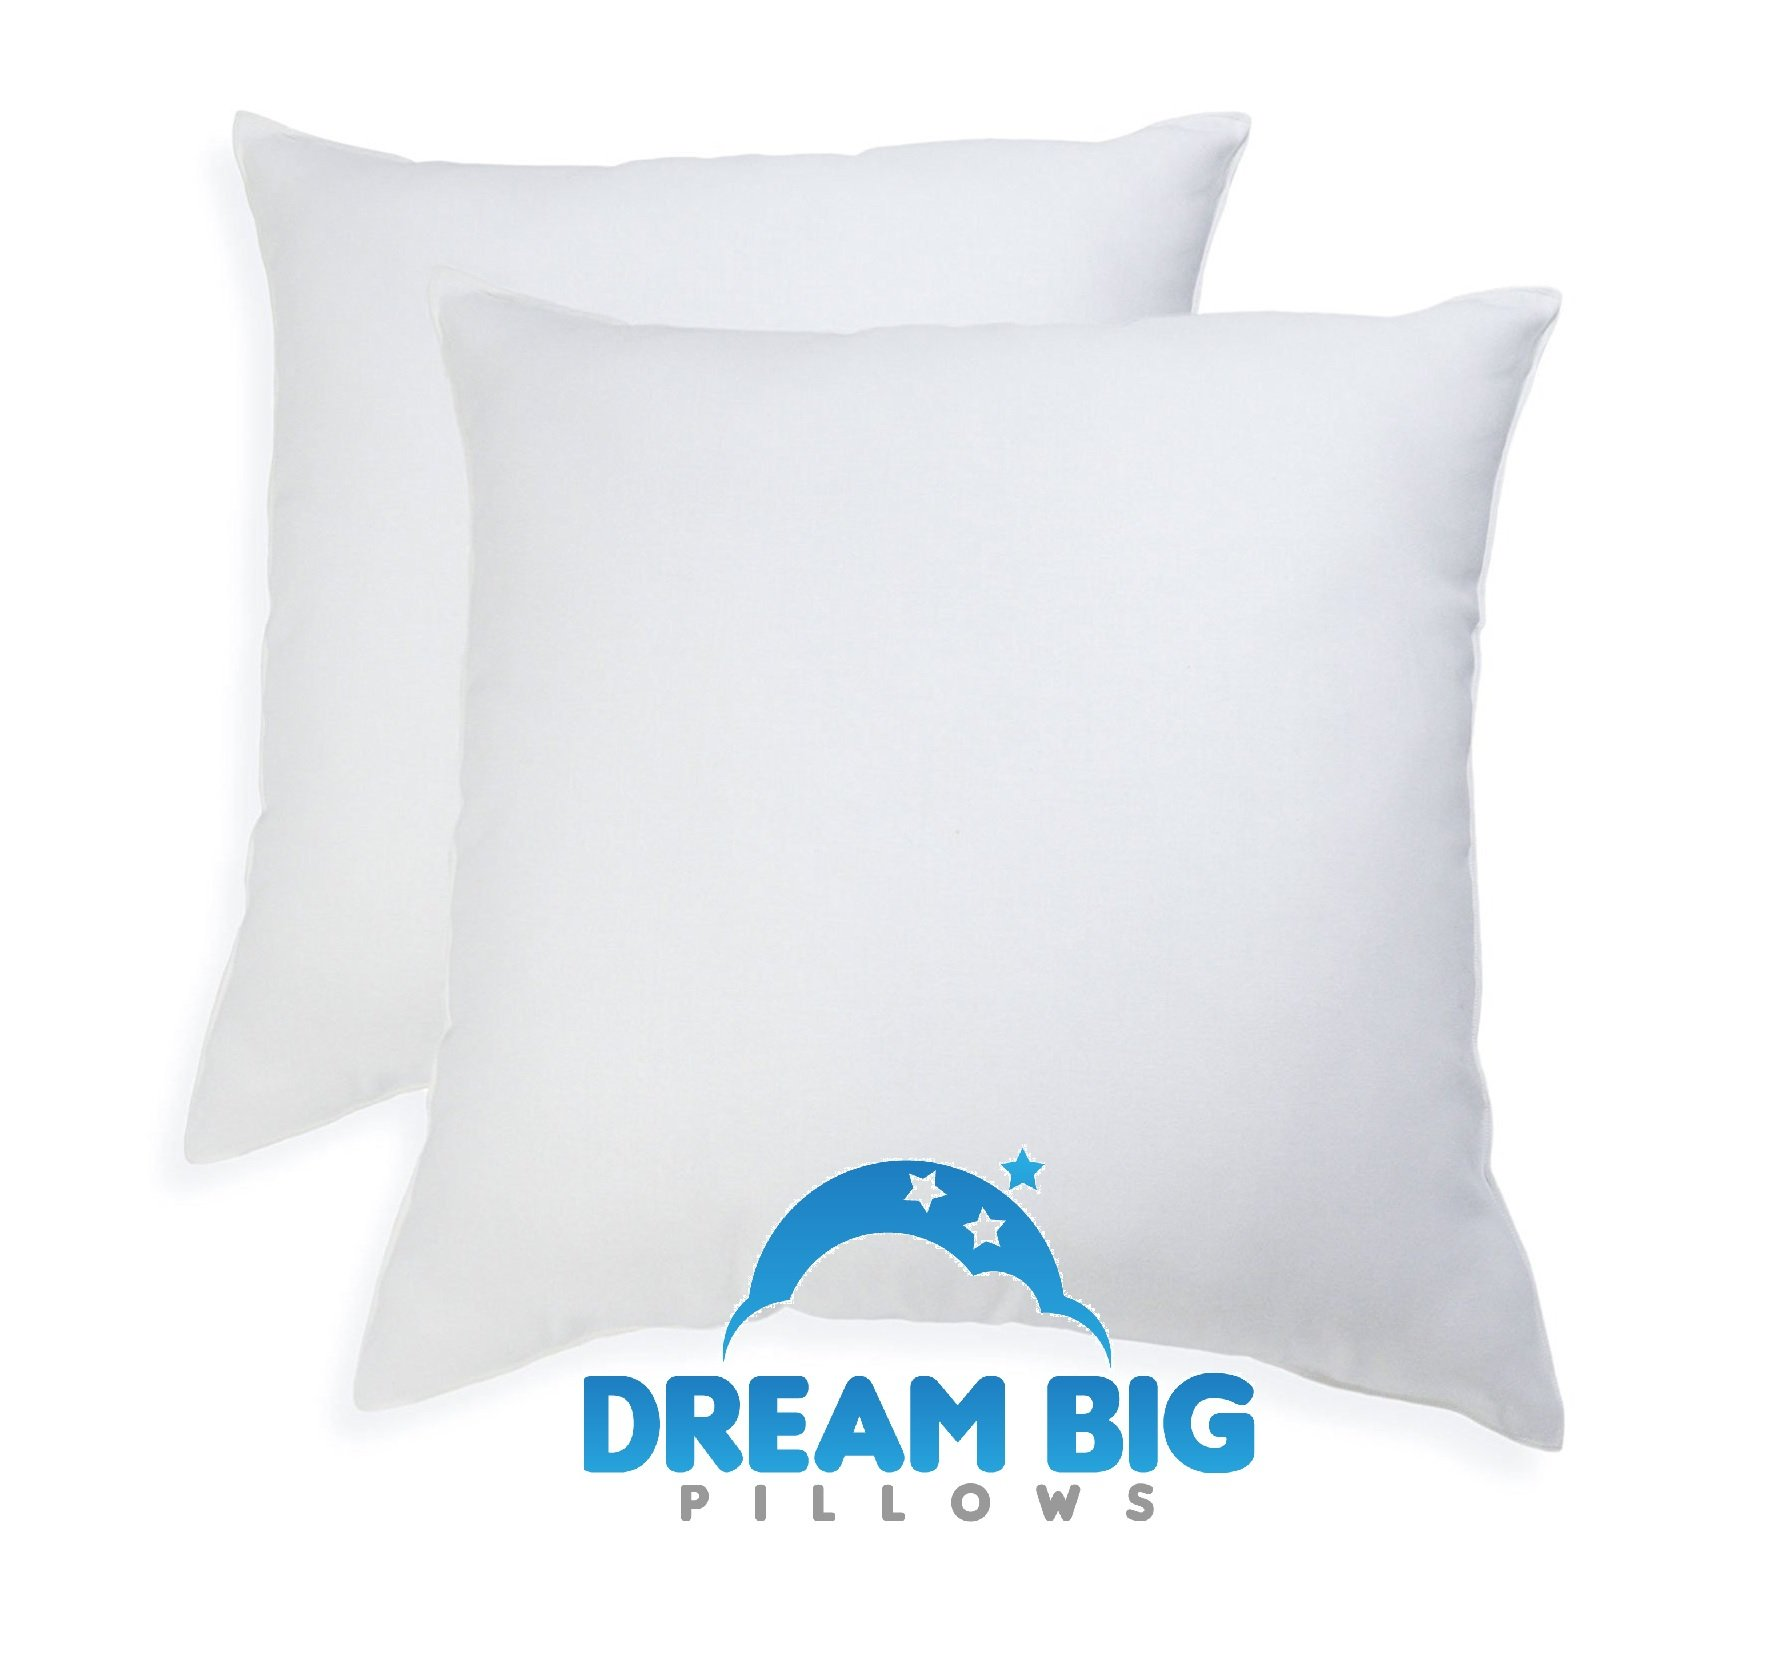 Euro Pillows Set of 2 (26 x 26 inch) Square Pillow Inserts for Decorative Bed Pillow Shams - Down Alternative, Filled in USA